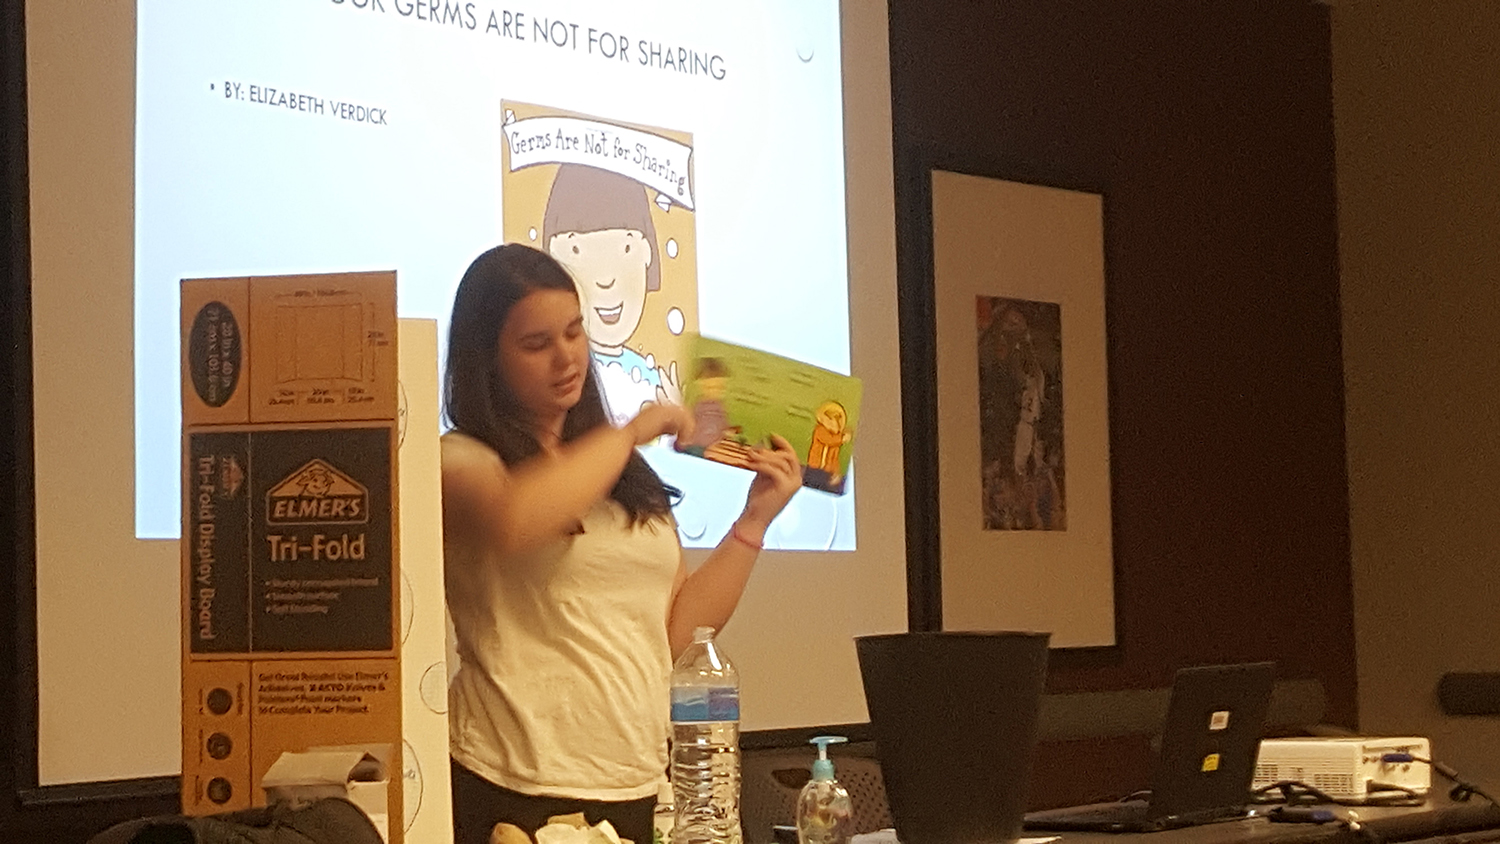 Natalie Gill is showing a book that you could read to preschoolers to teach about handwashing during her health visual